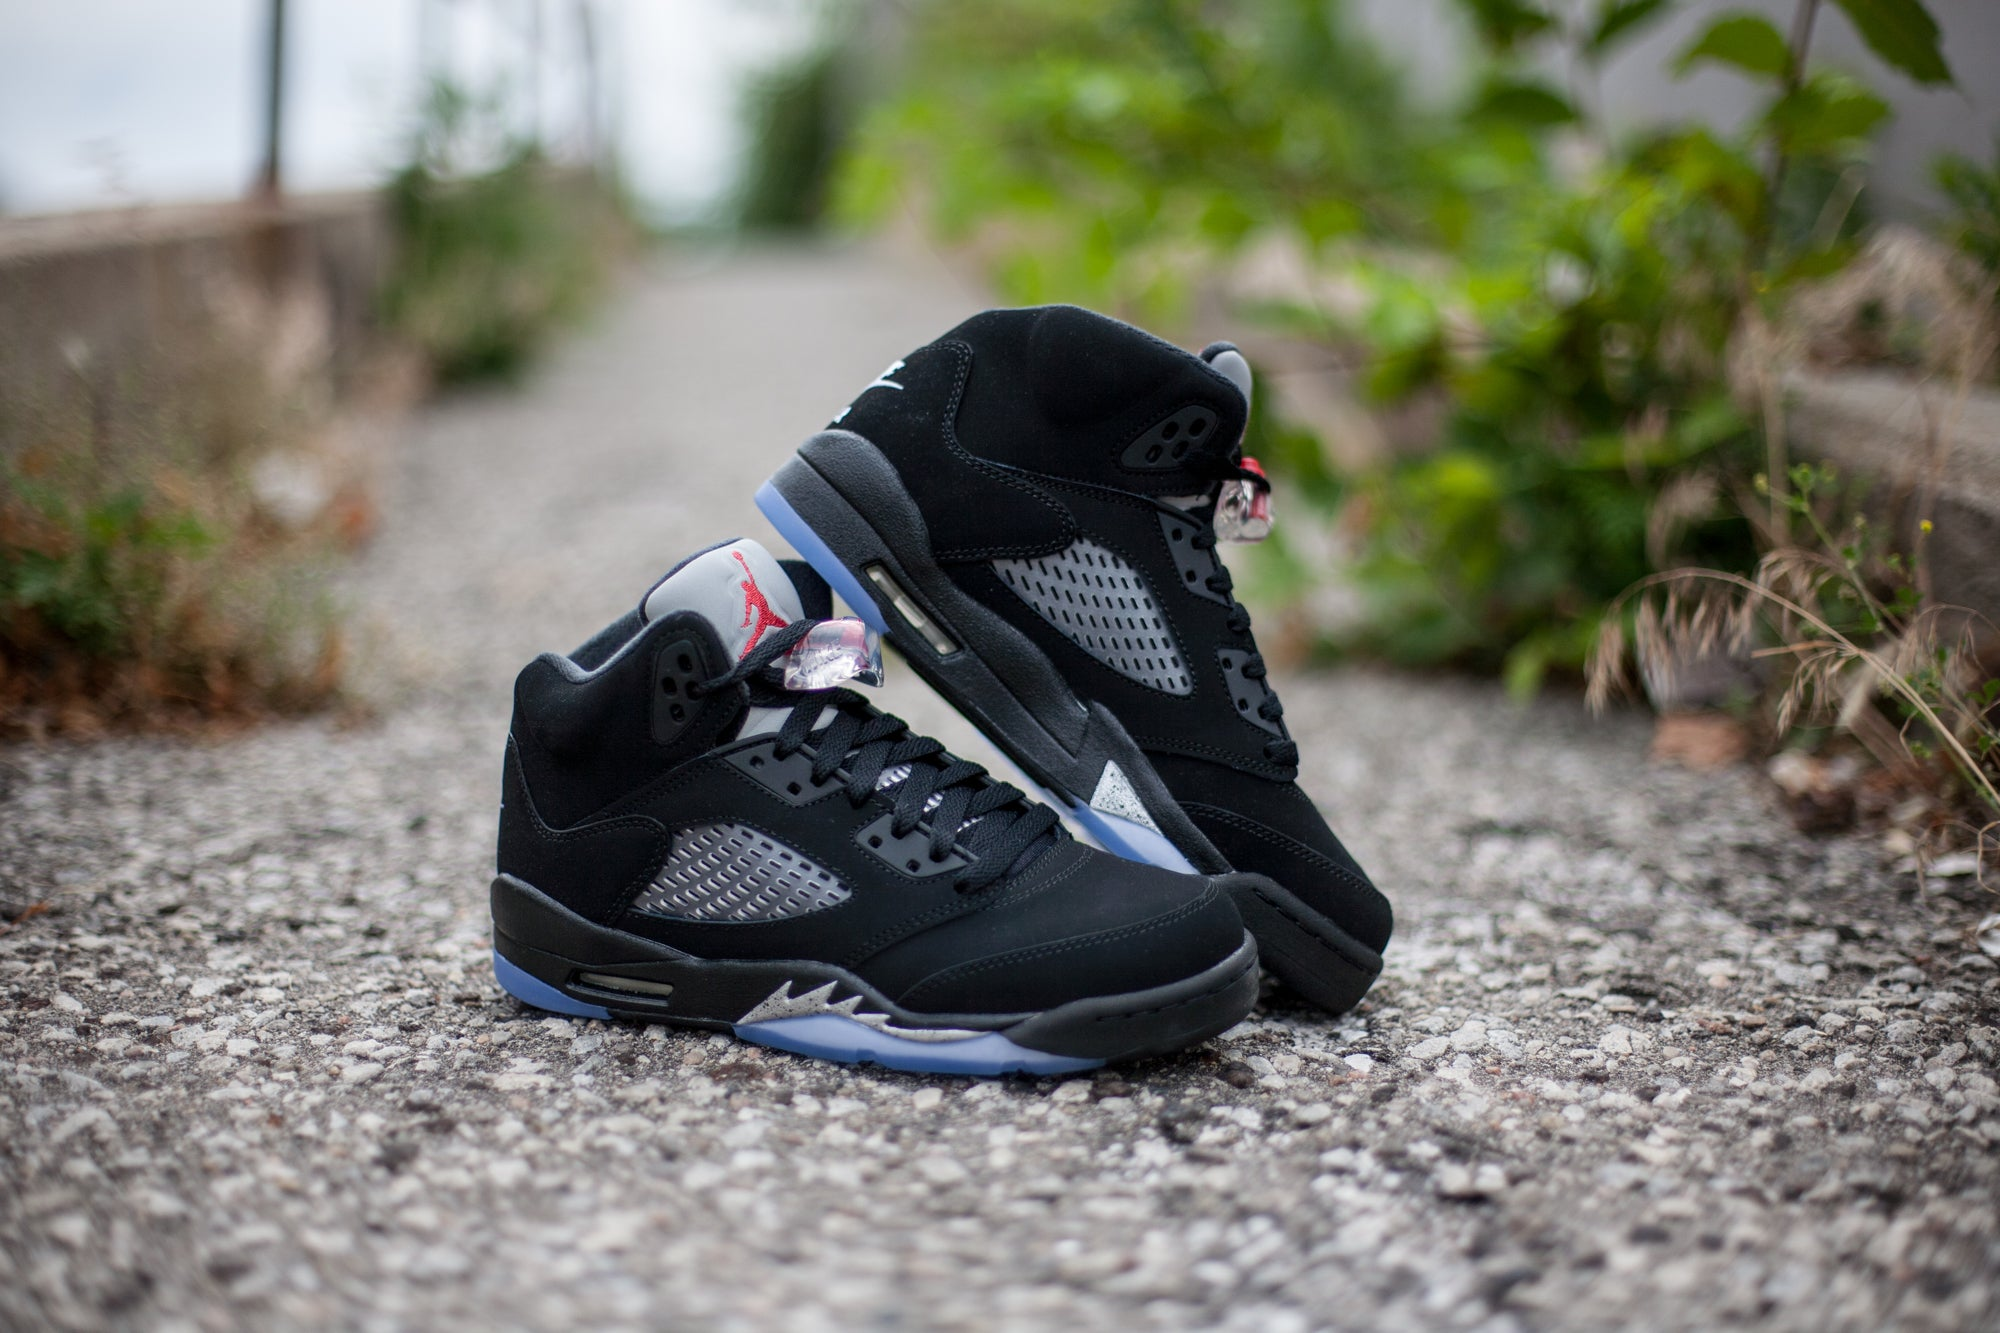 0f57a162654 The Jordan Brand has been remastering retros all year long, and one of the  most highly anticipated releases of 2016 has finally arrived. The Air  Jordan 5 ' ...